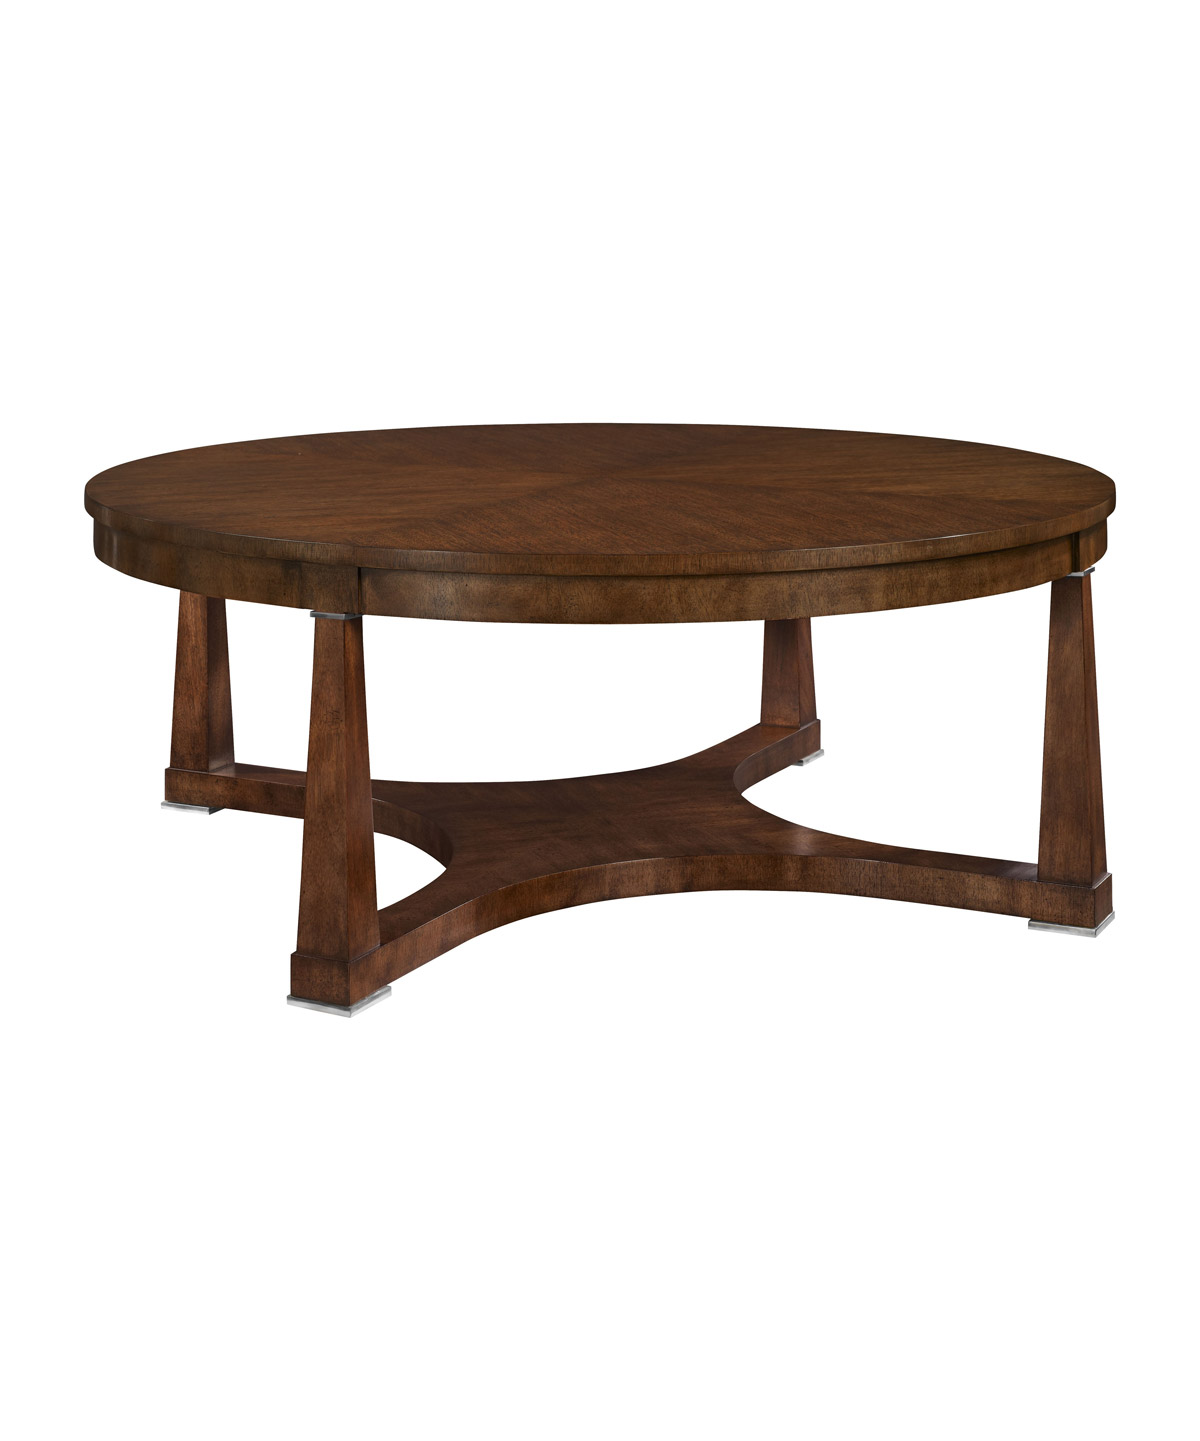 Bowman Cocktail Table